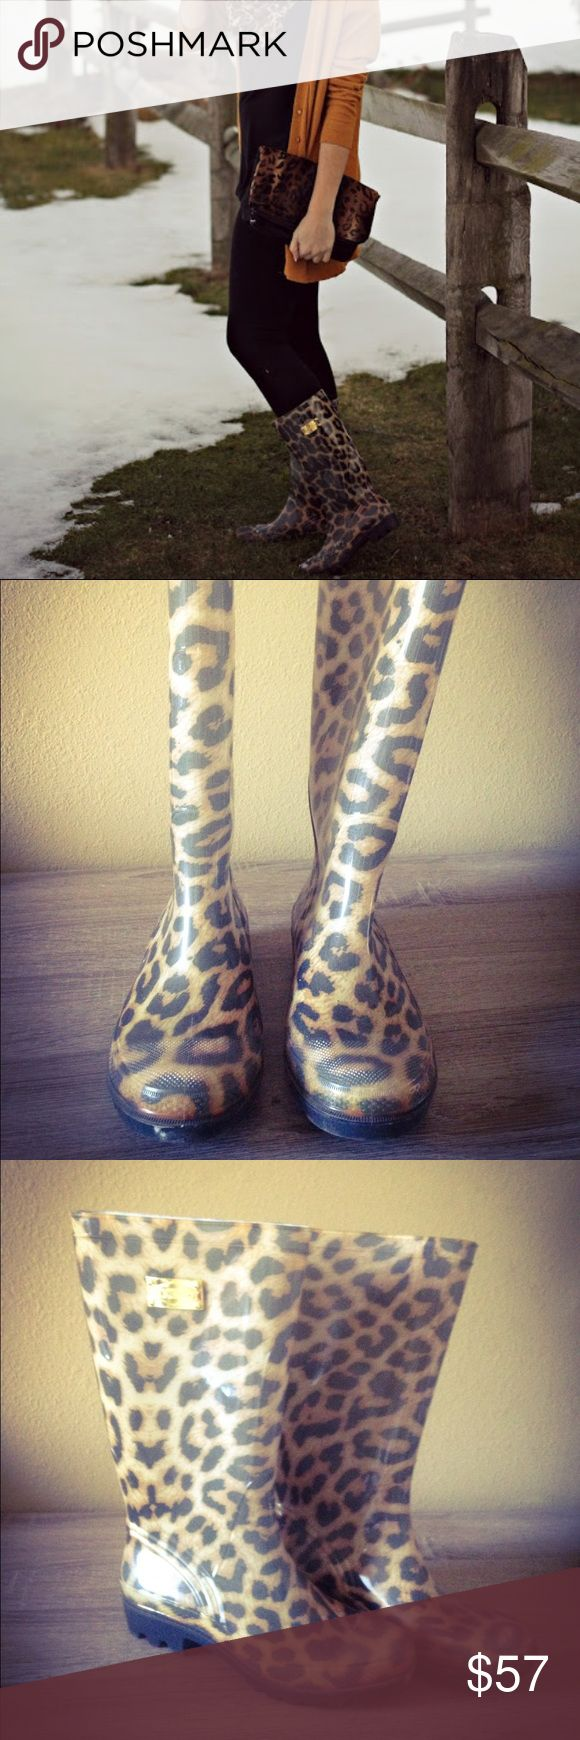 •GUESS Rain Boots• Leopard print GUESS rain boots. Only worn once, in great condition! Guess Shoes Winter & Rain Boots